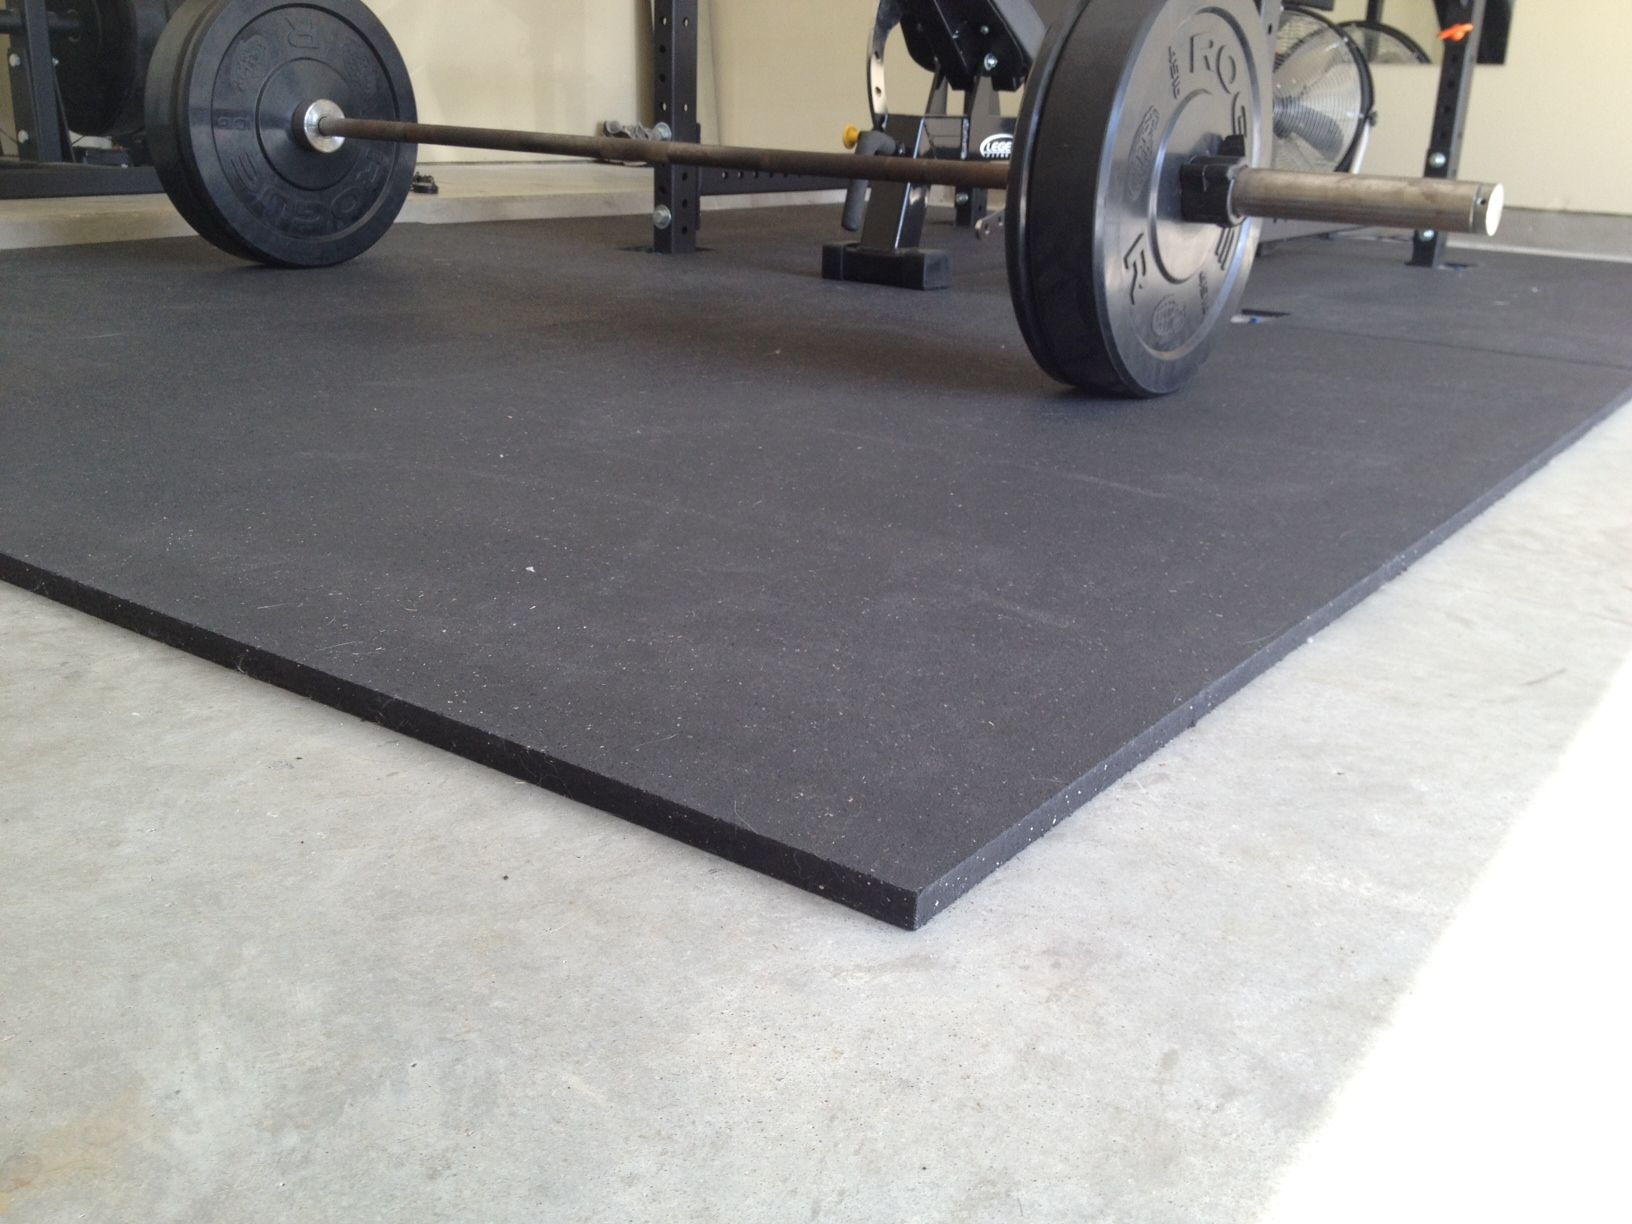 Garage Gym Flooring Protect your Equipment and